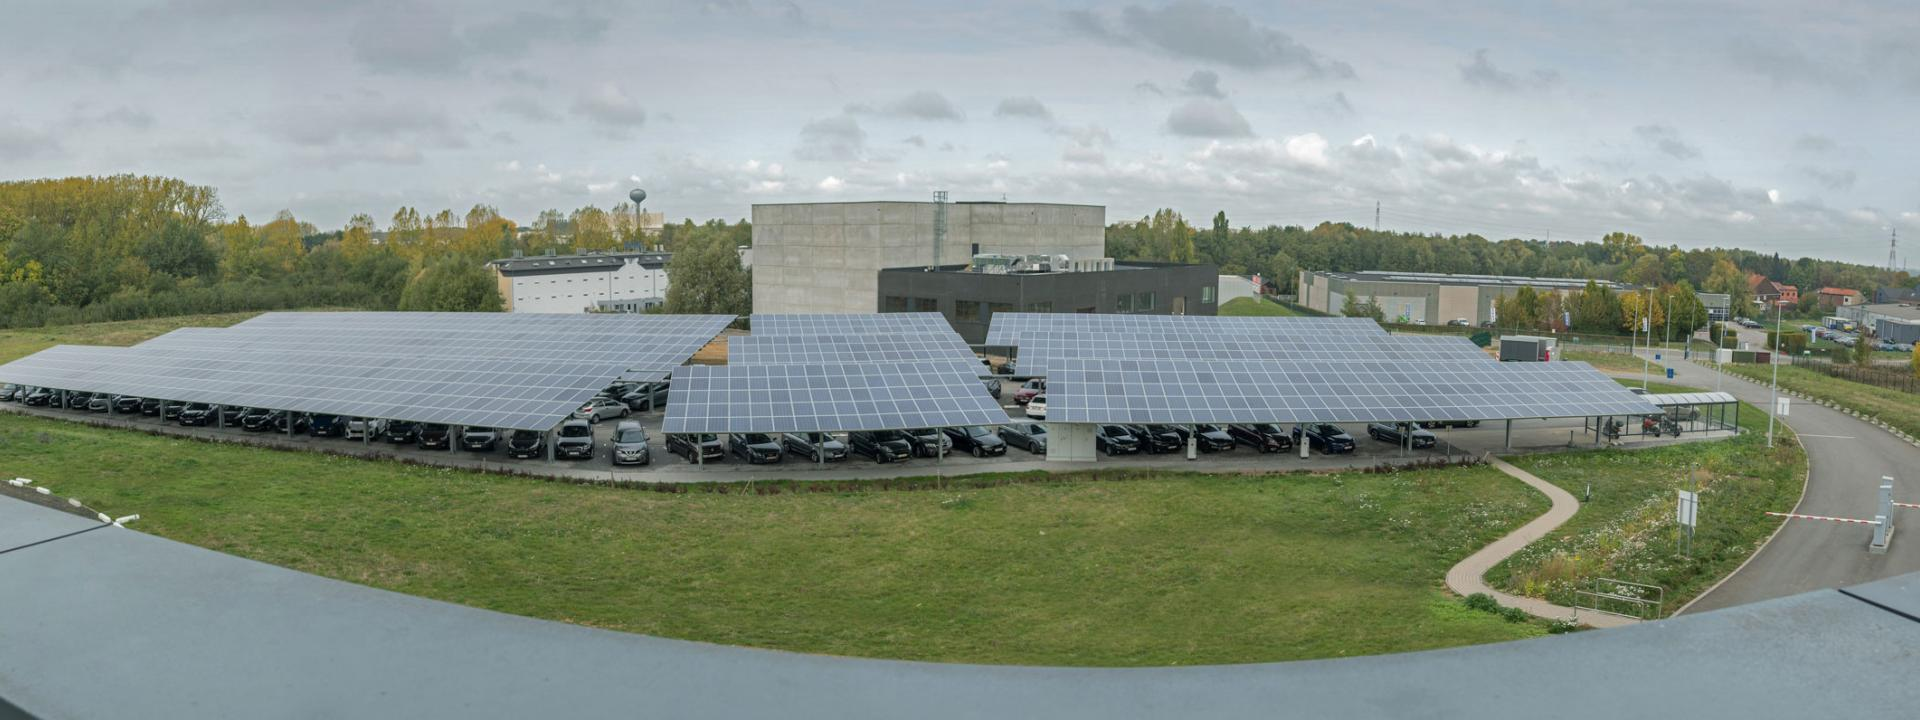 Photovoltaic panels at the AGC Technovation Center (Belgium)